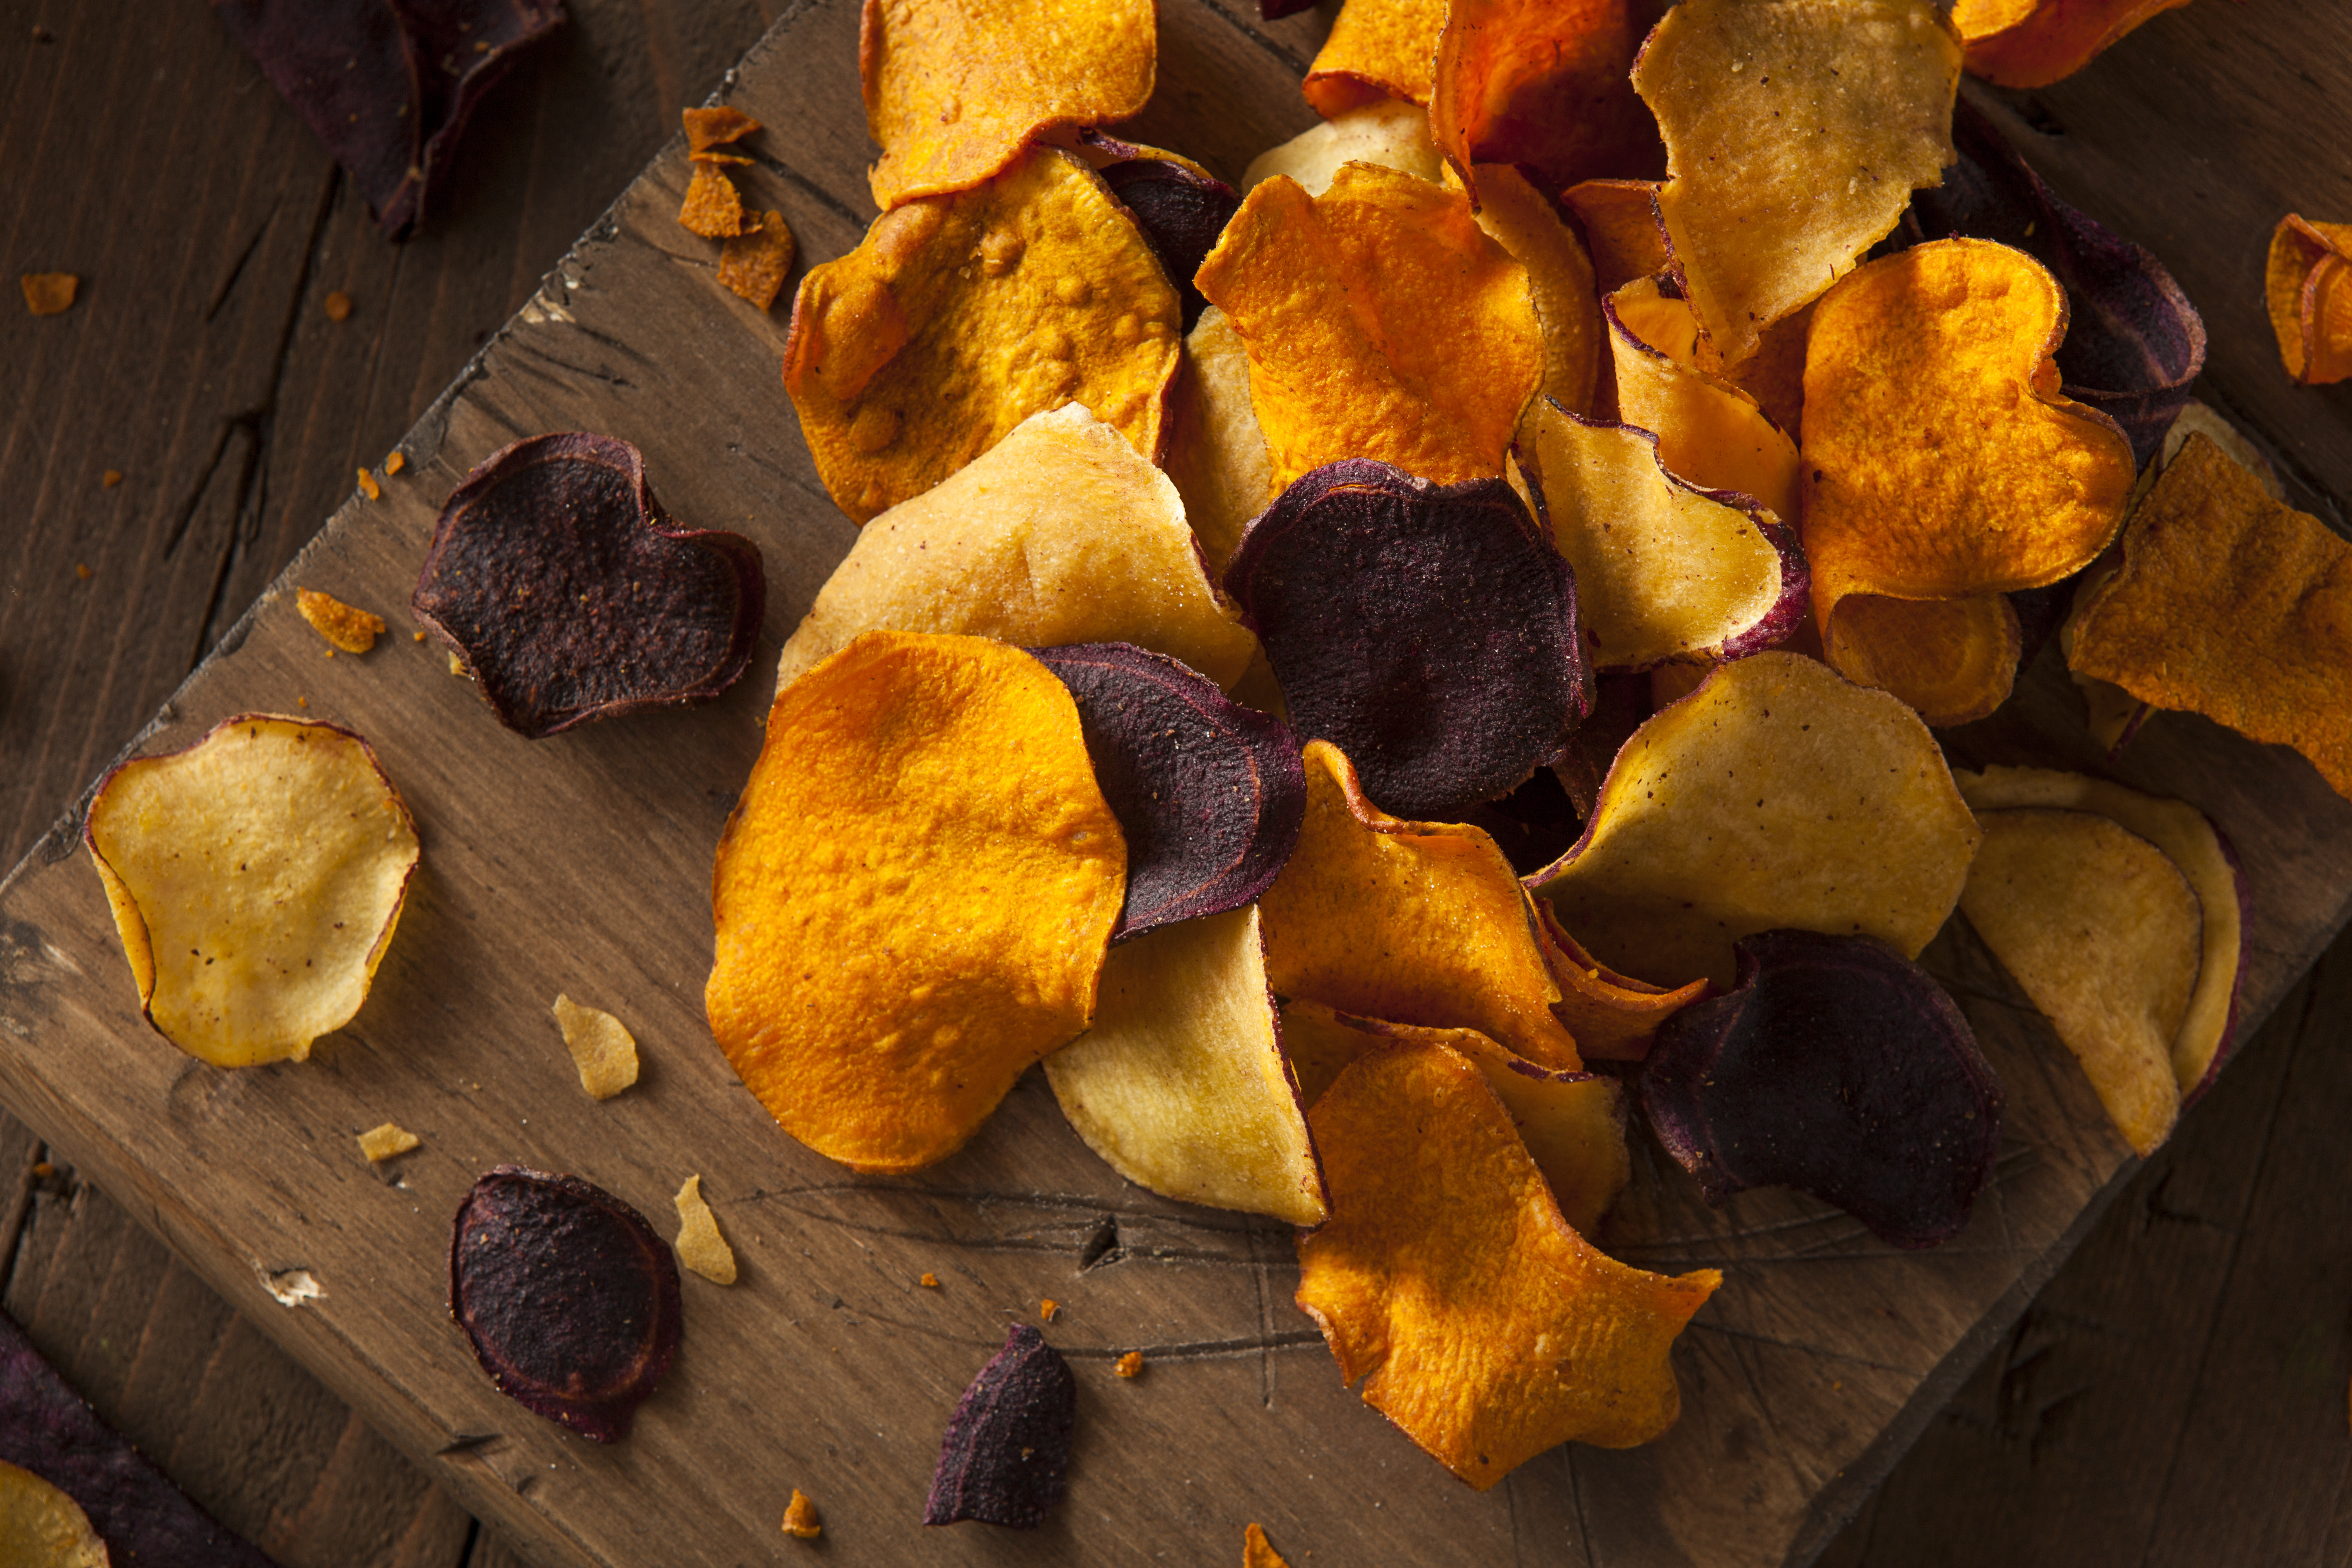 TASTY TUESDAY'S: OUR FAVORITE POTATO CHIPS